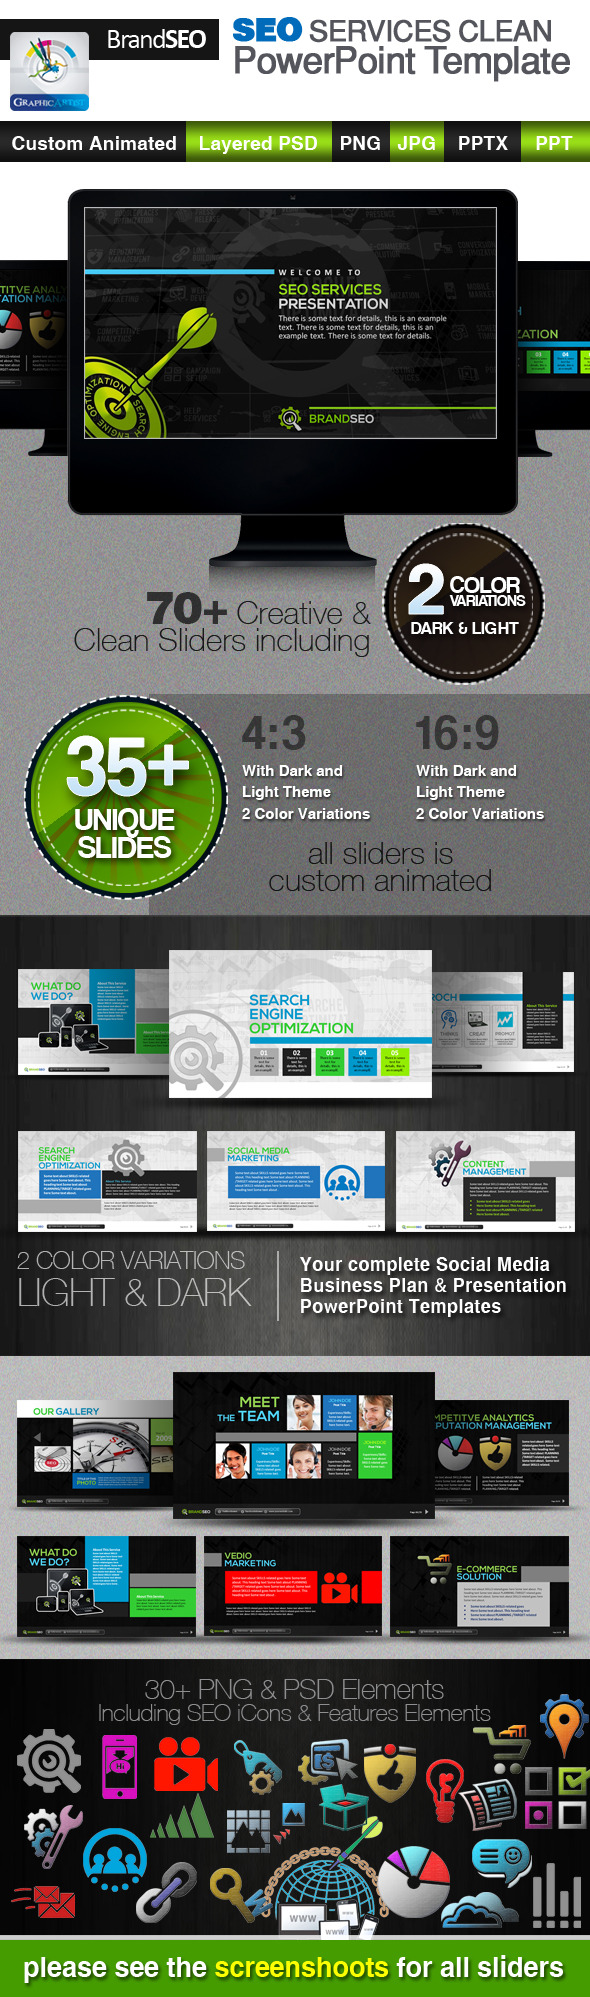 BrandSEO SEO Services PowerPoint Templates